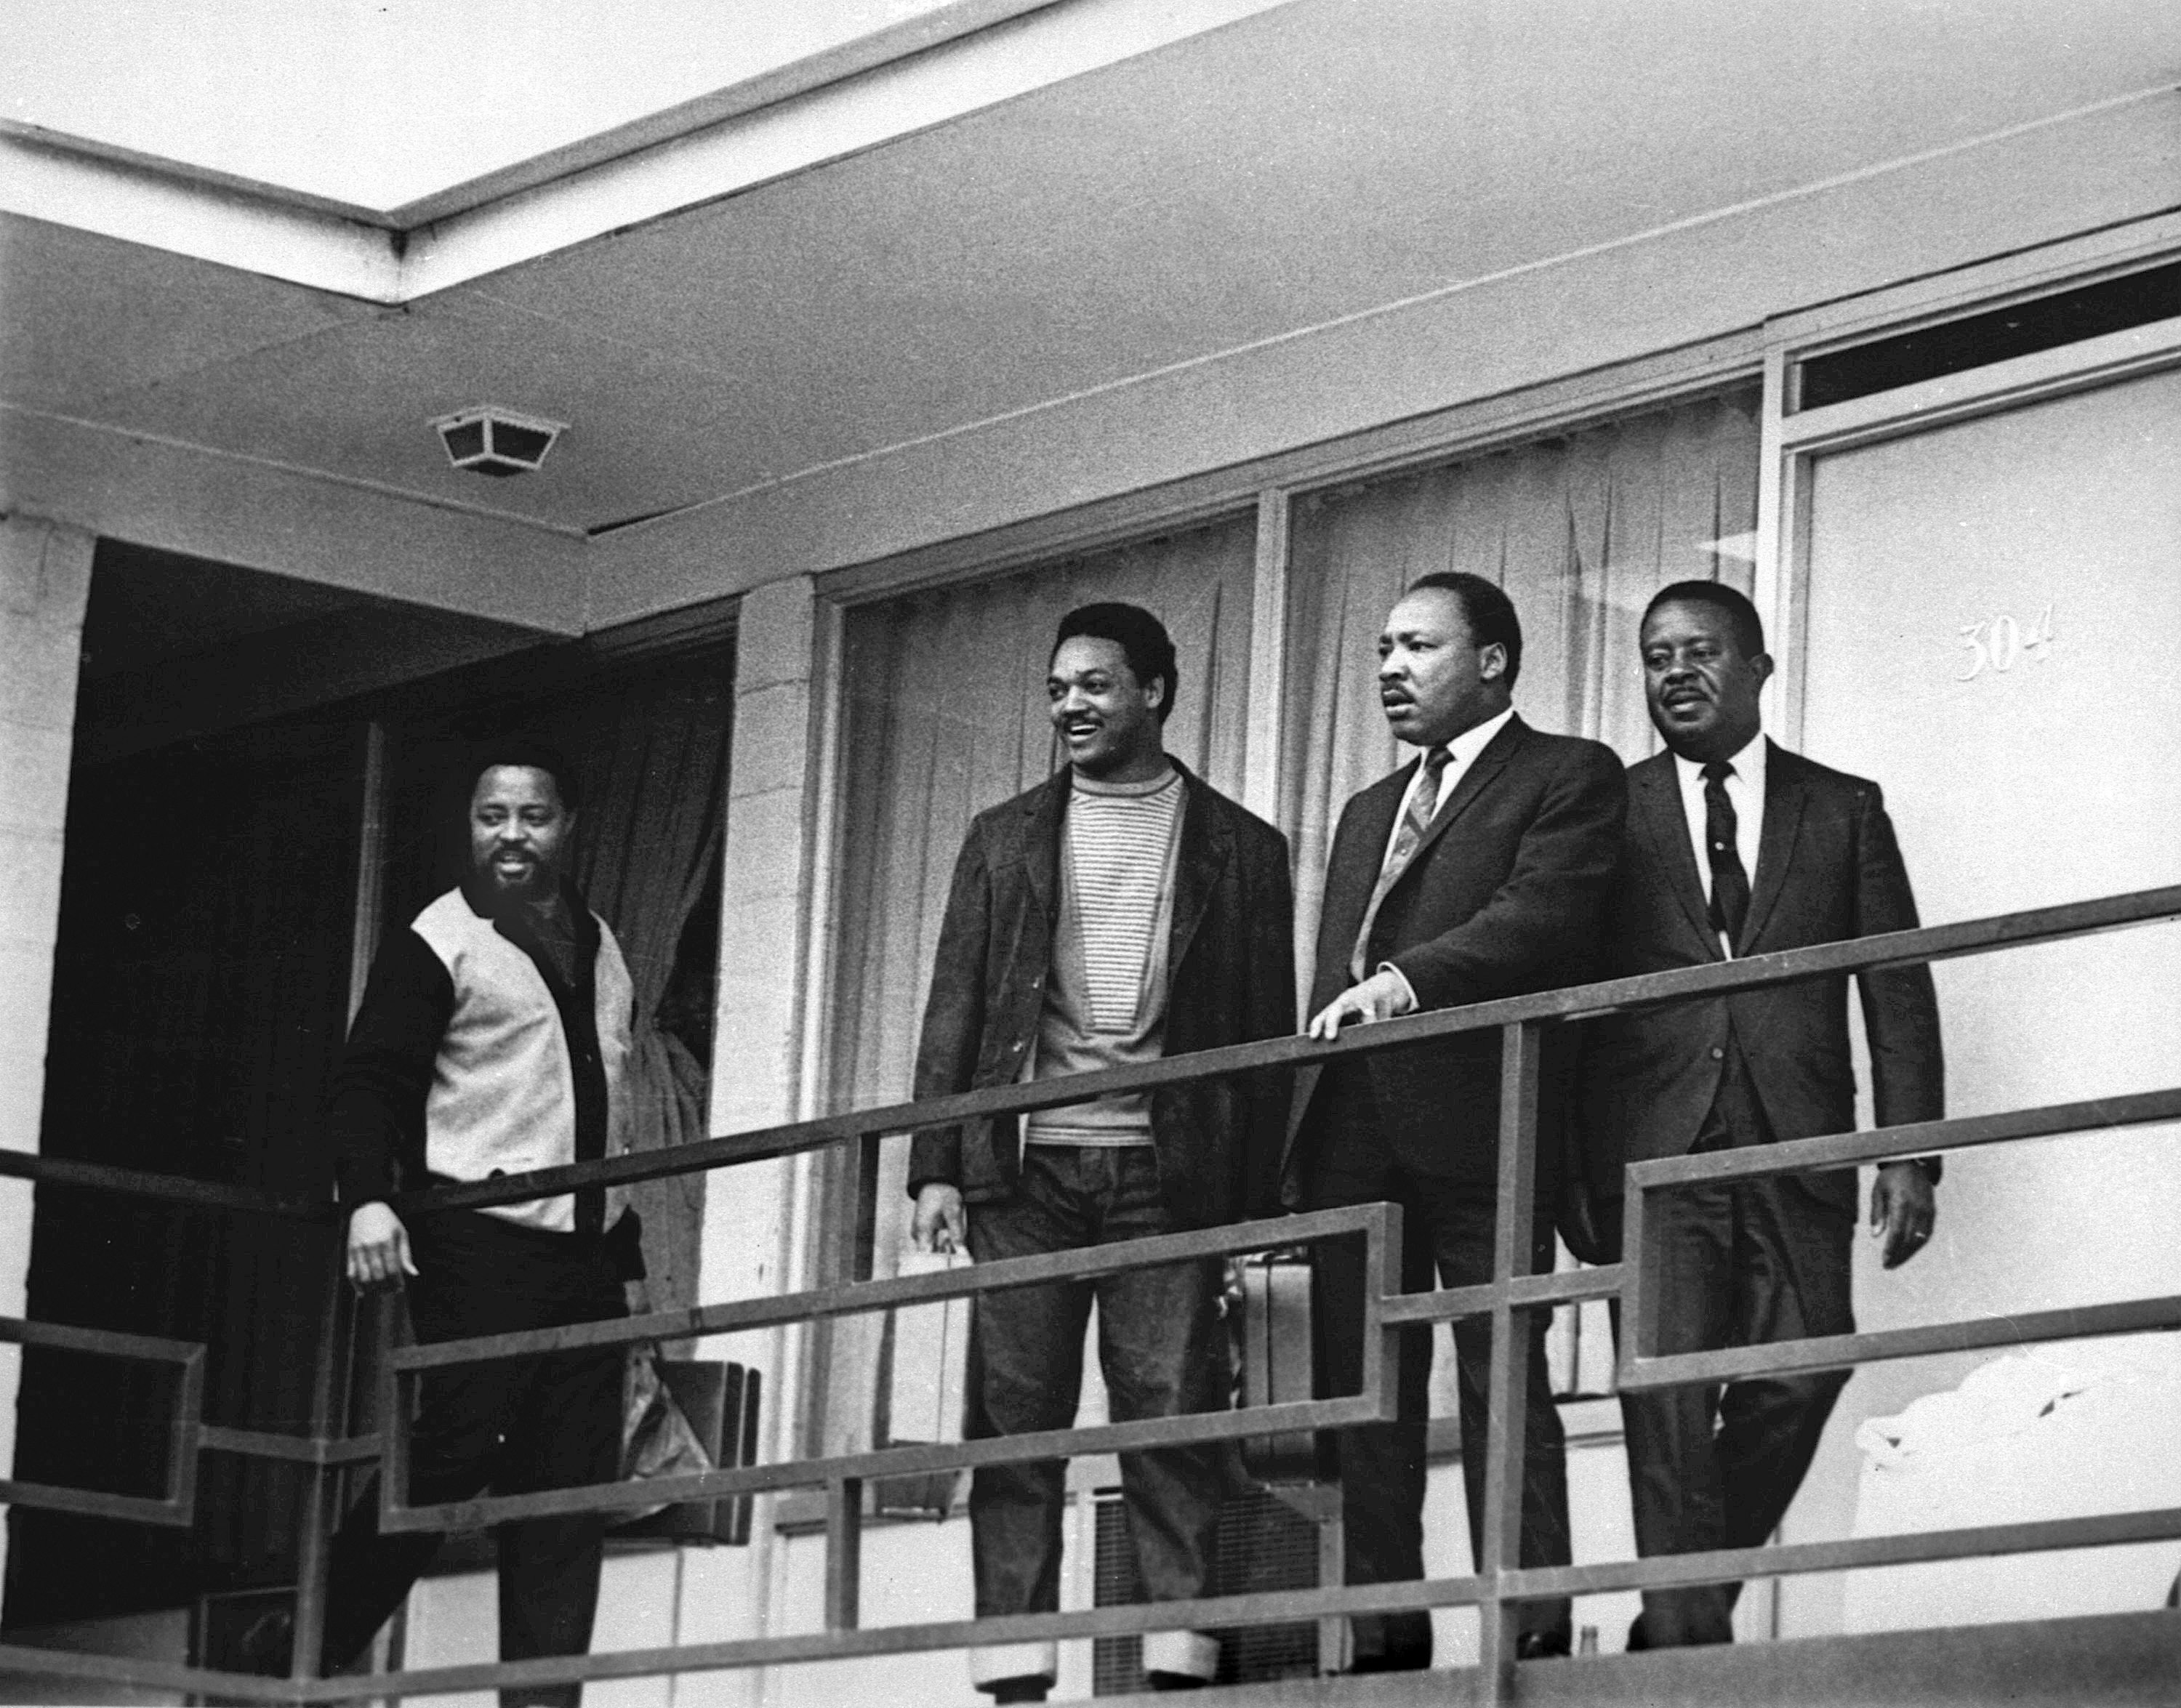 Dr. Martin Luther King, Jr. at the Lorraine Hotel